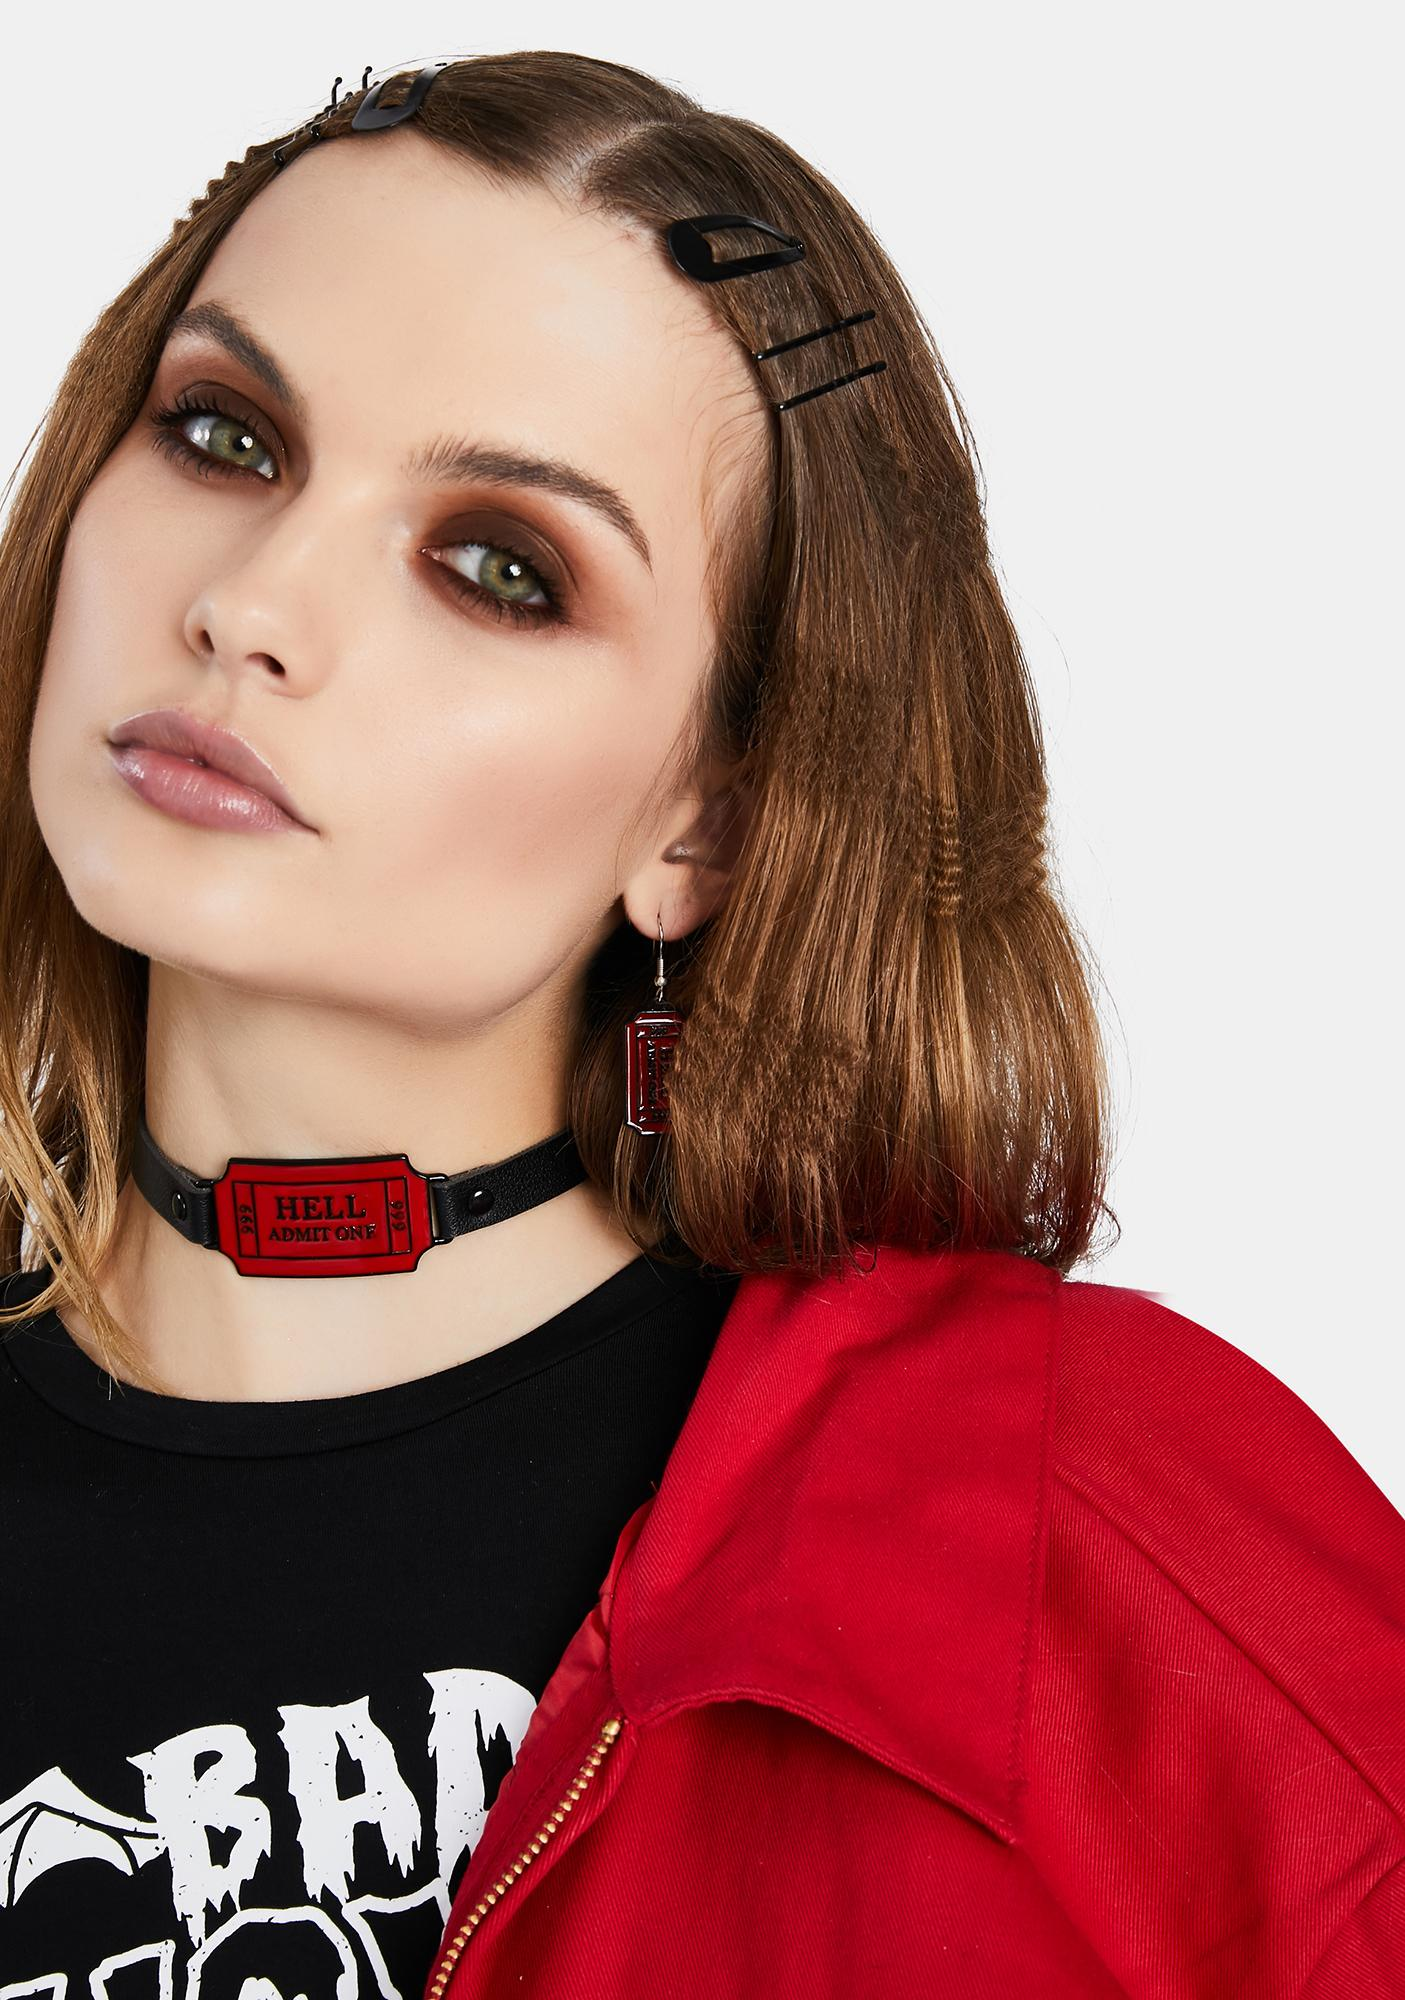 Ticket To Hell Choker